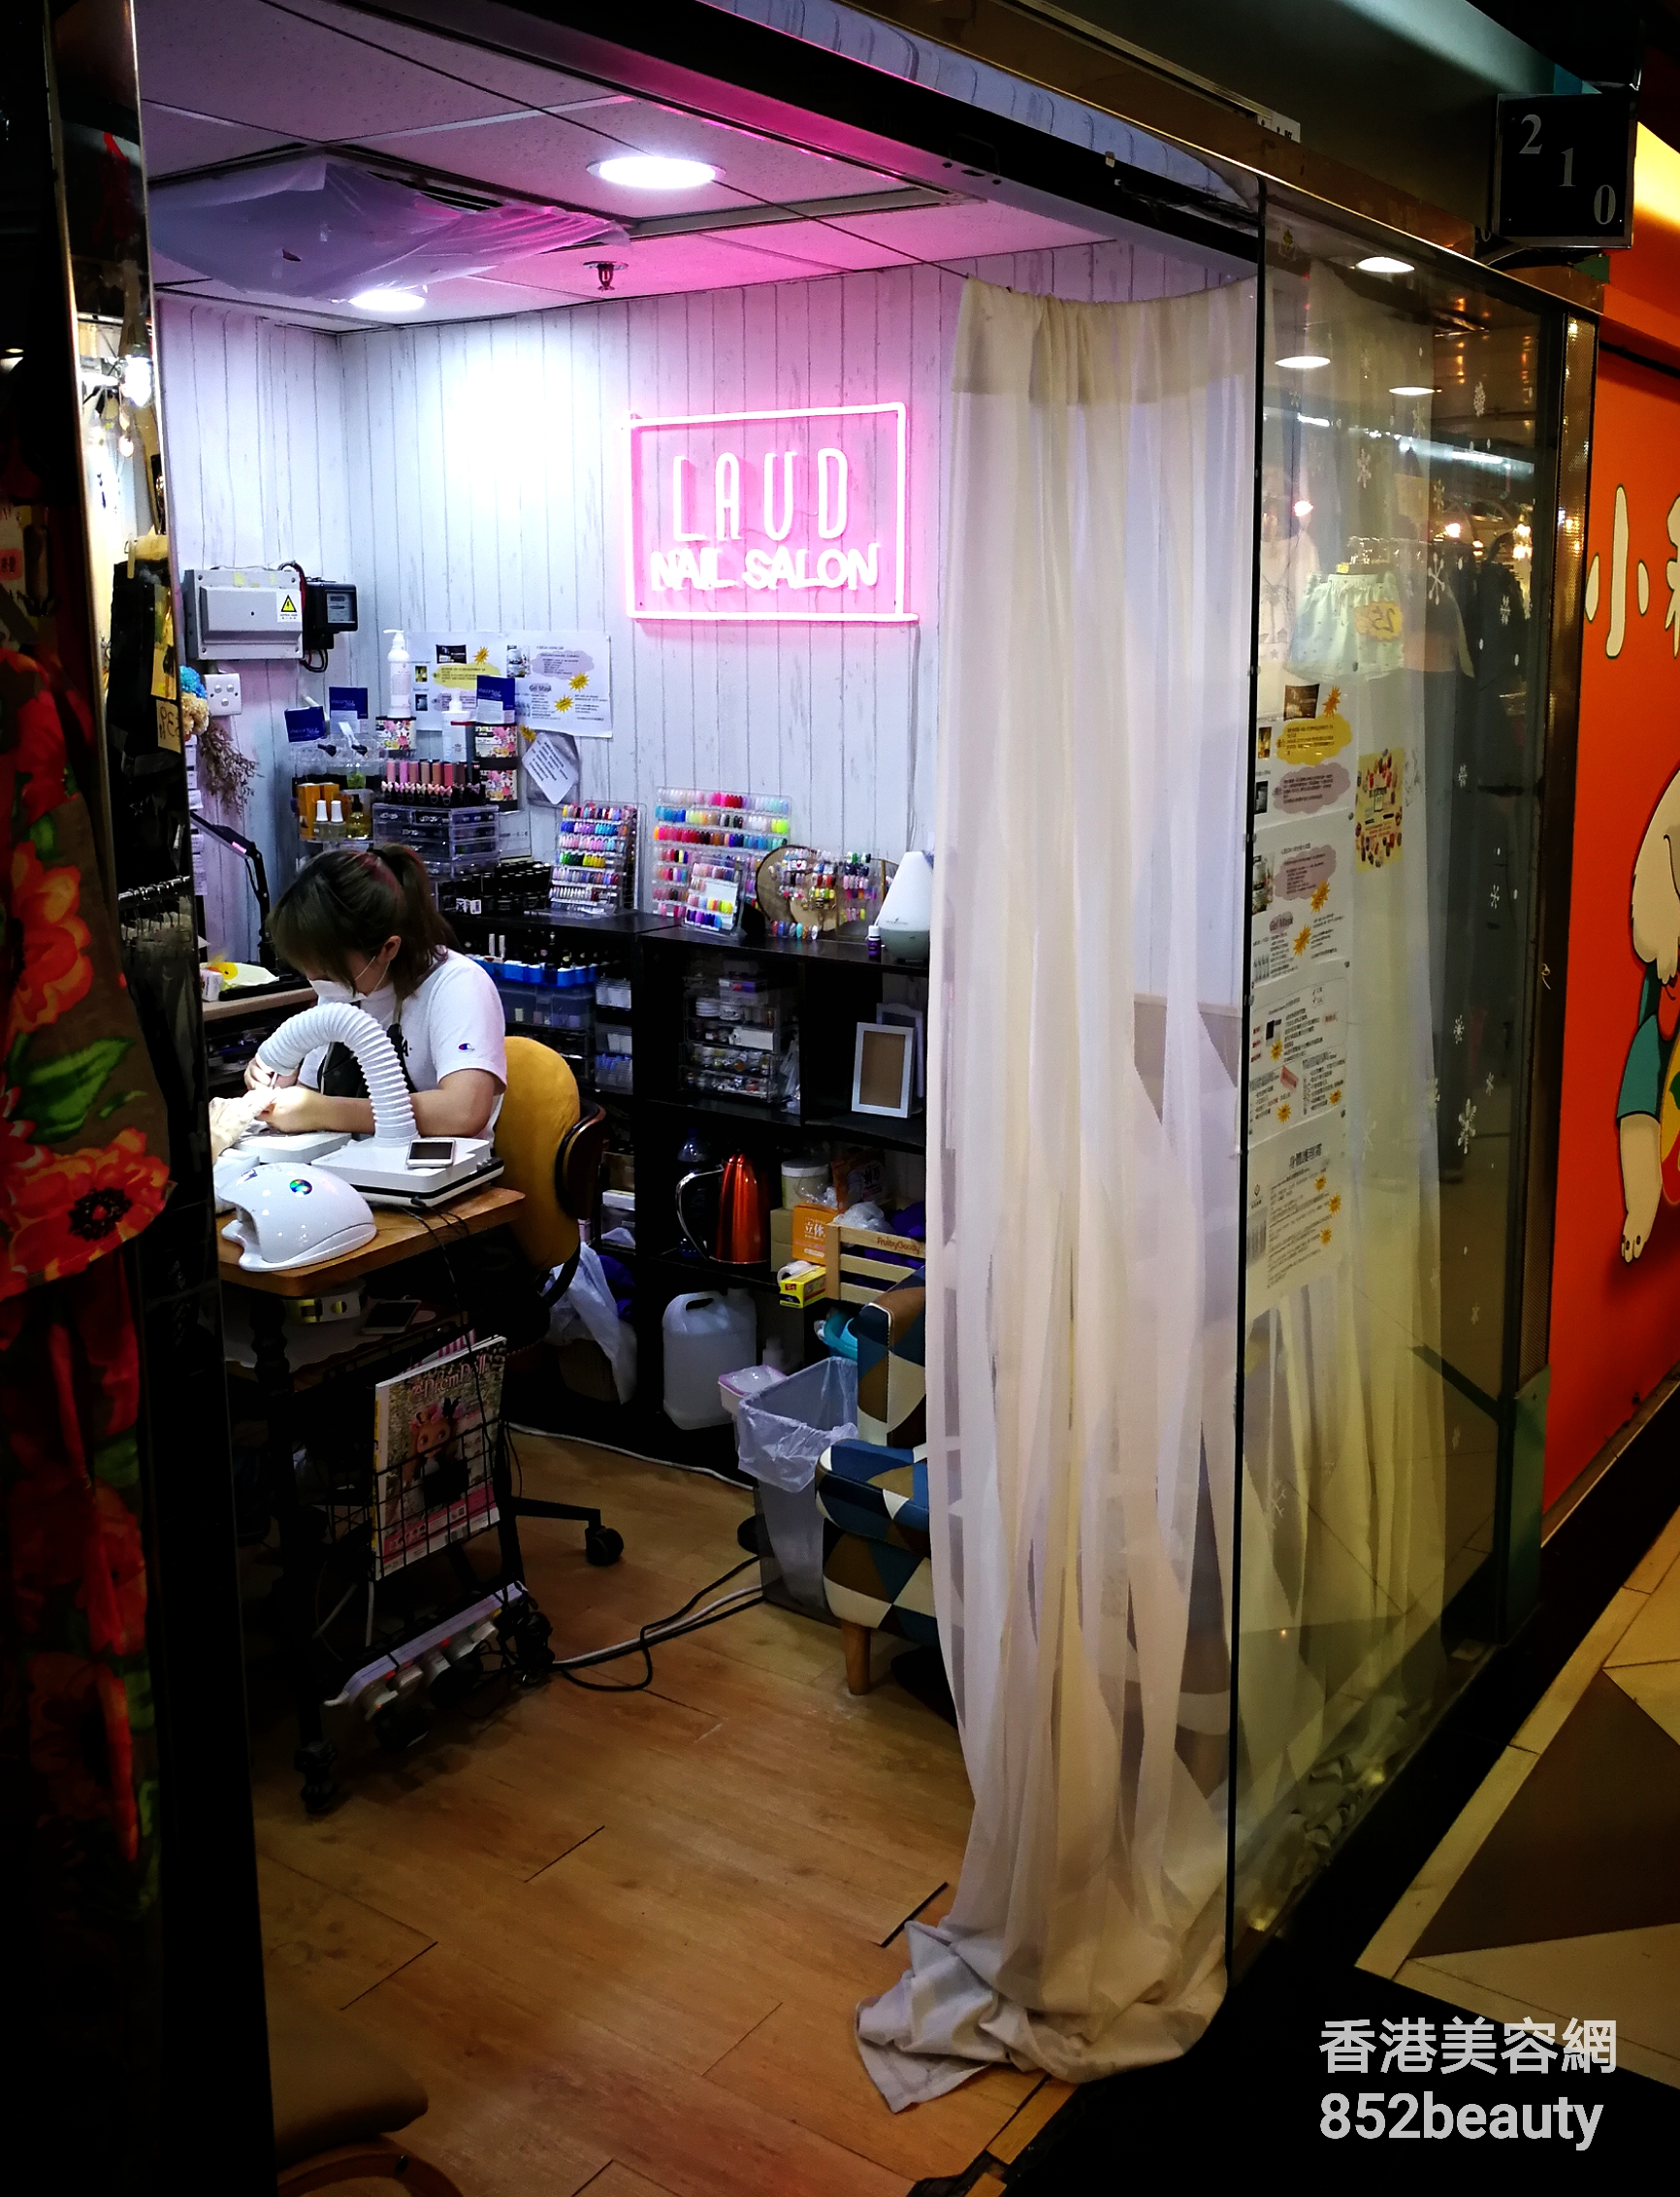 美容院: LaUd Nail Salon